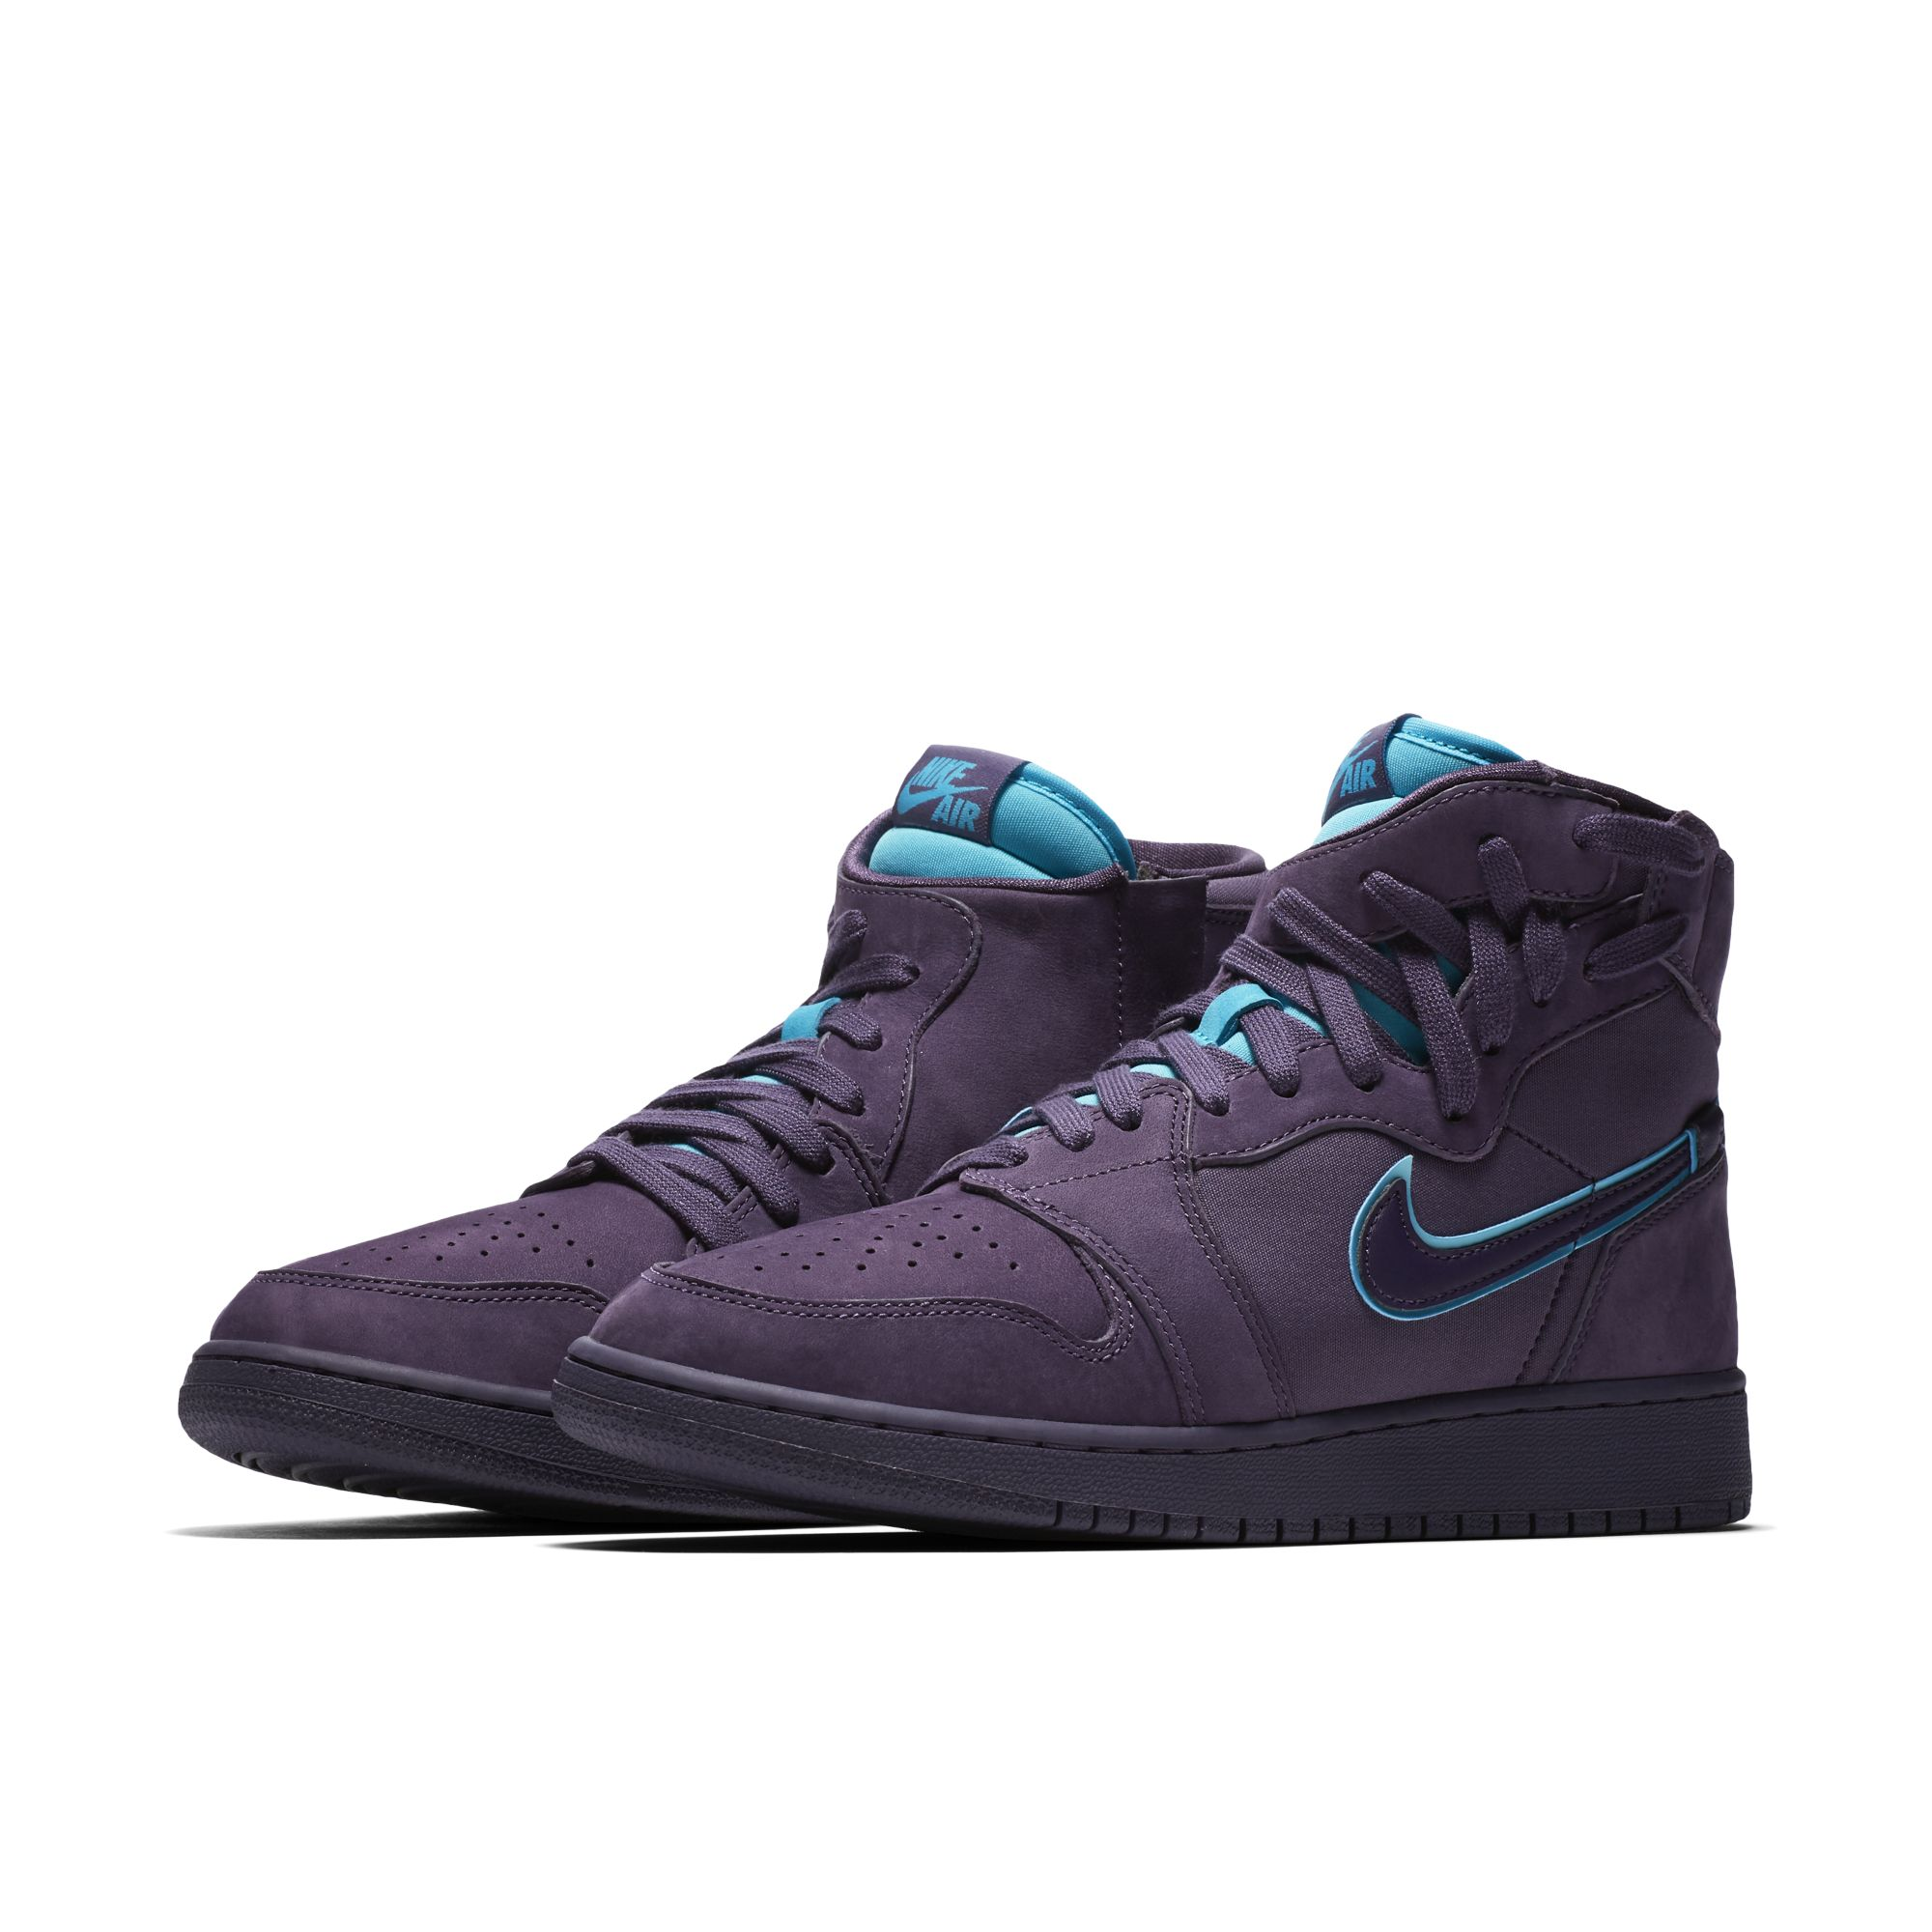 AIR JORDAN 1 REBEL XX DARK RAISIN:RAPID TEAL:WHITE:DARK RAISIN 1